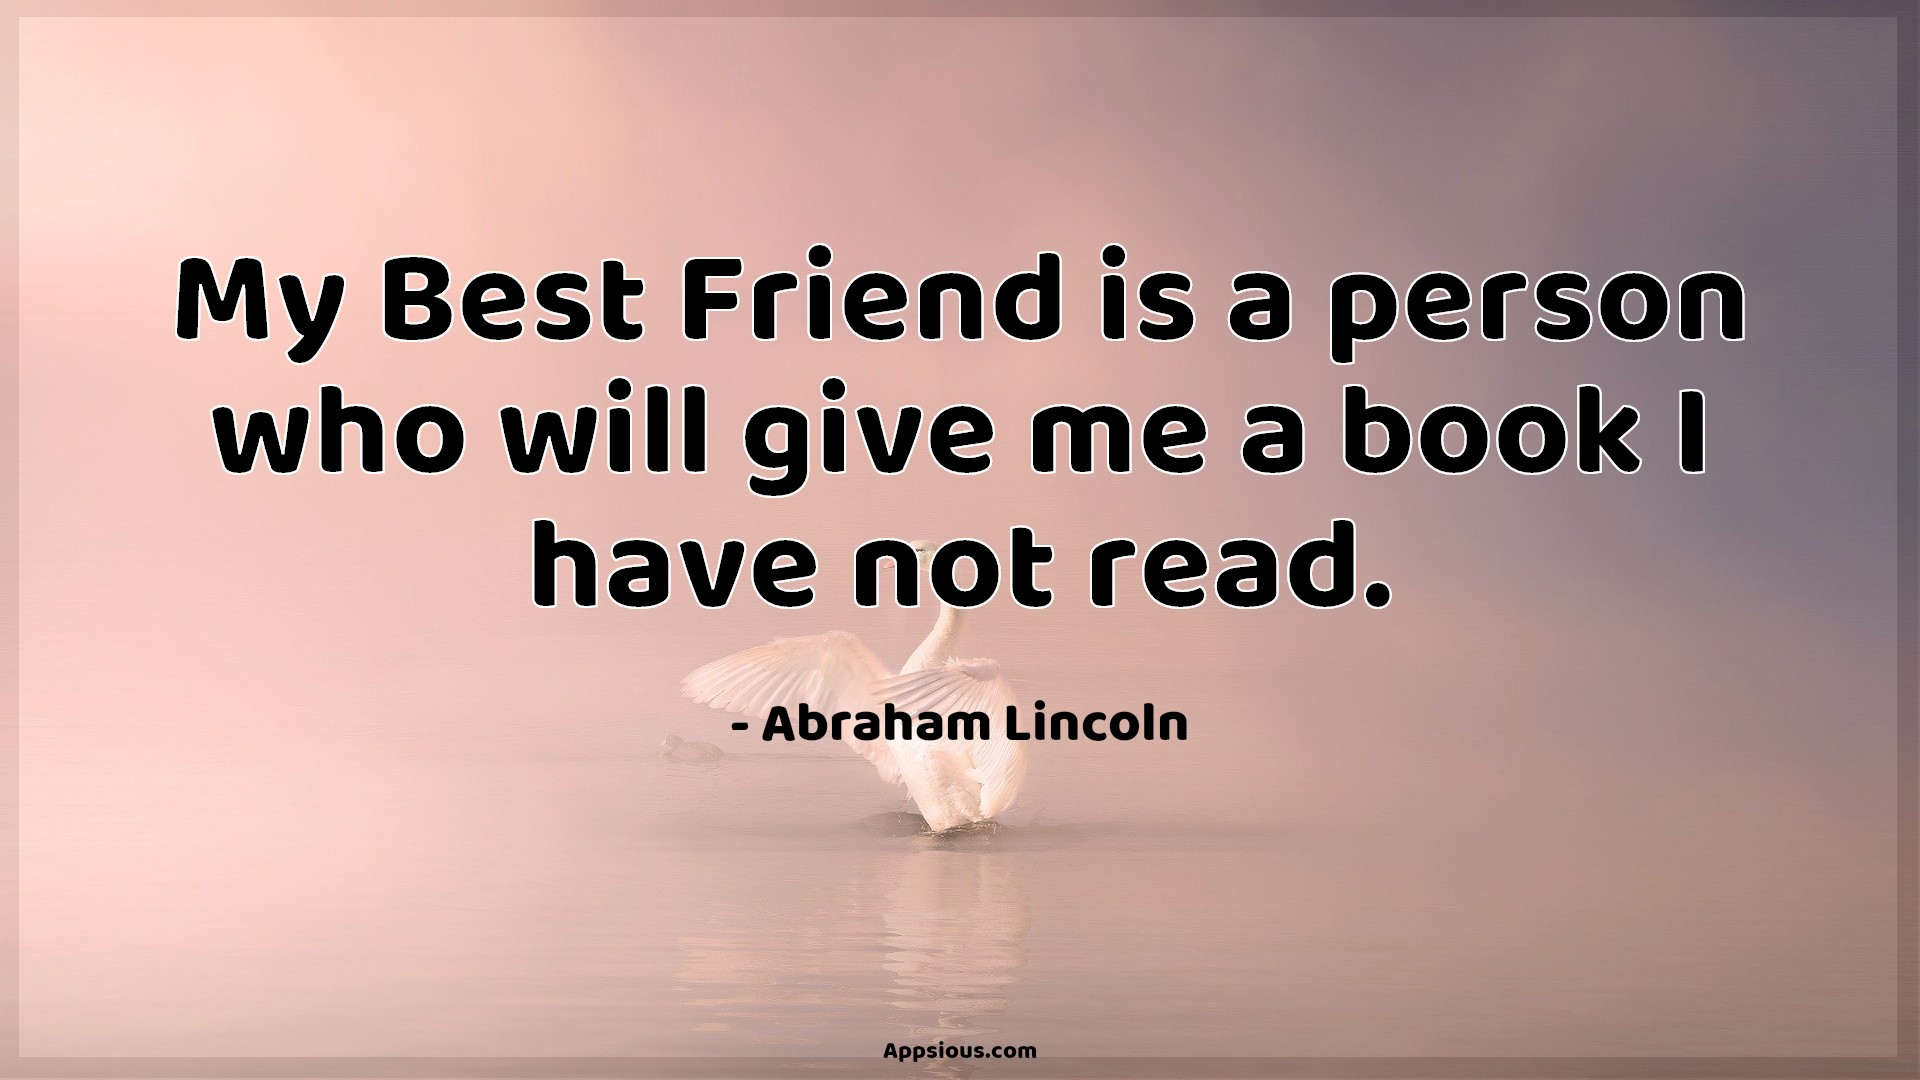 My Best Friend is a person who will give me a book I have not read.